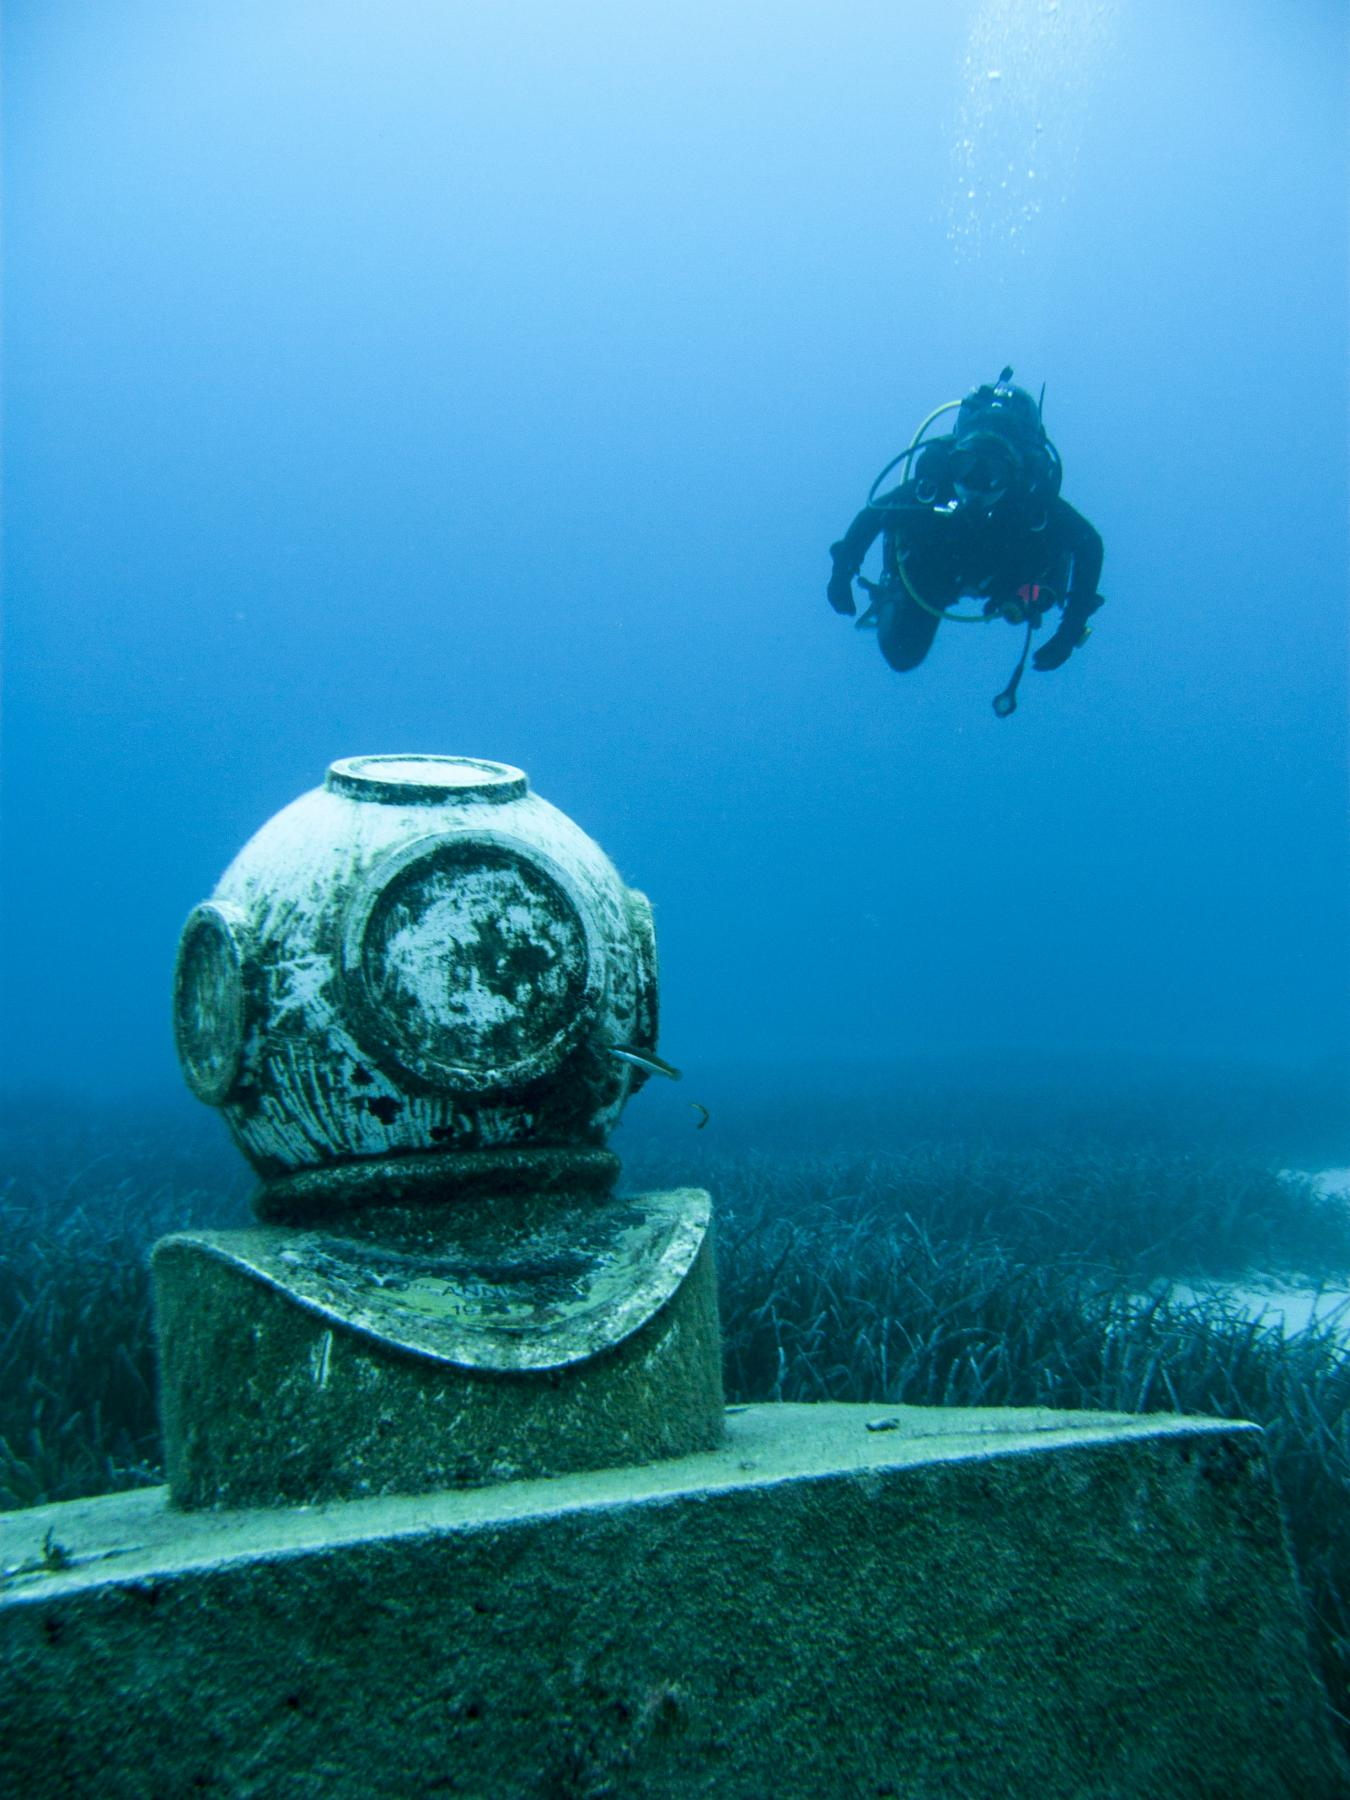 Diving helmet statue